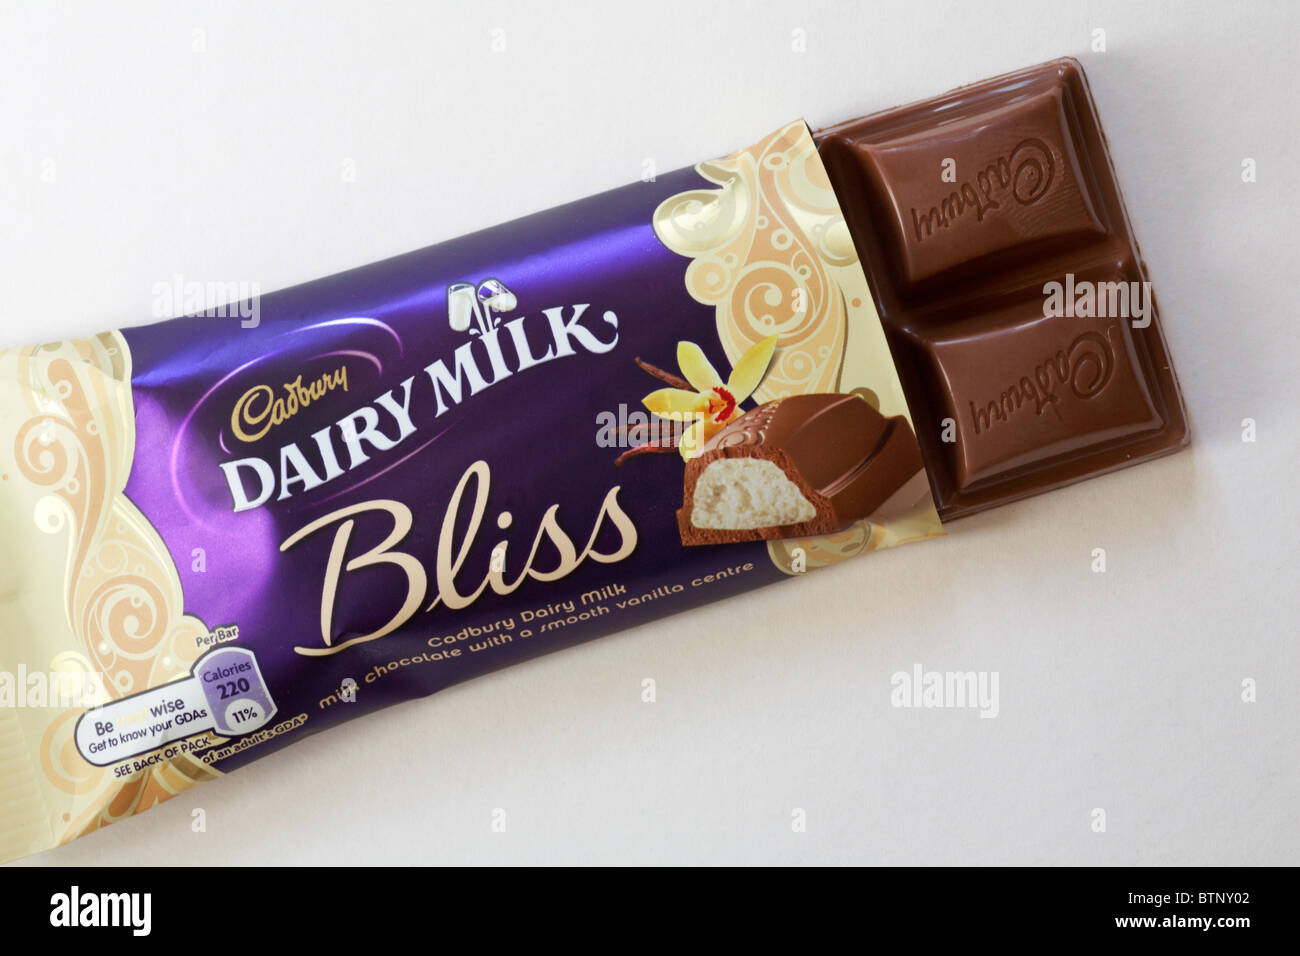 cadbury chocolate Browse recipes view our delicious range of cadbury inspired recipes browse now.